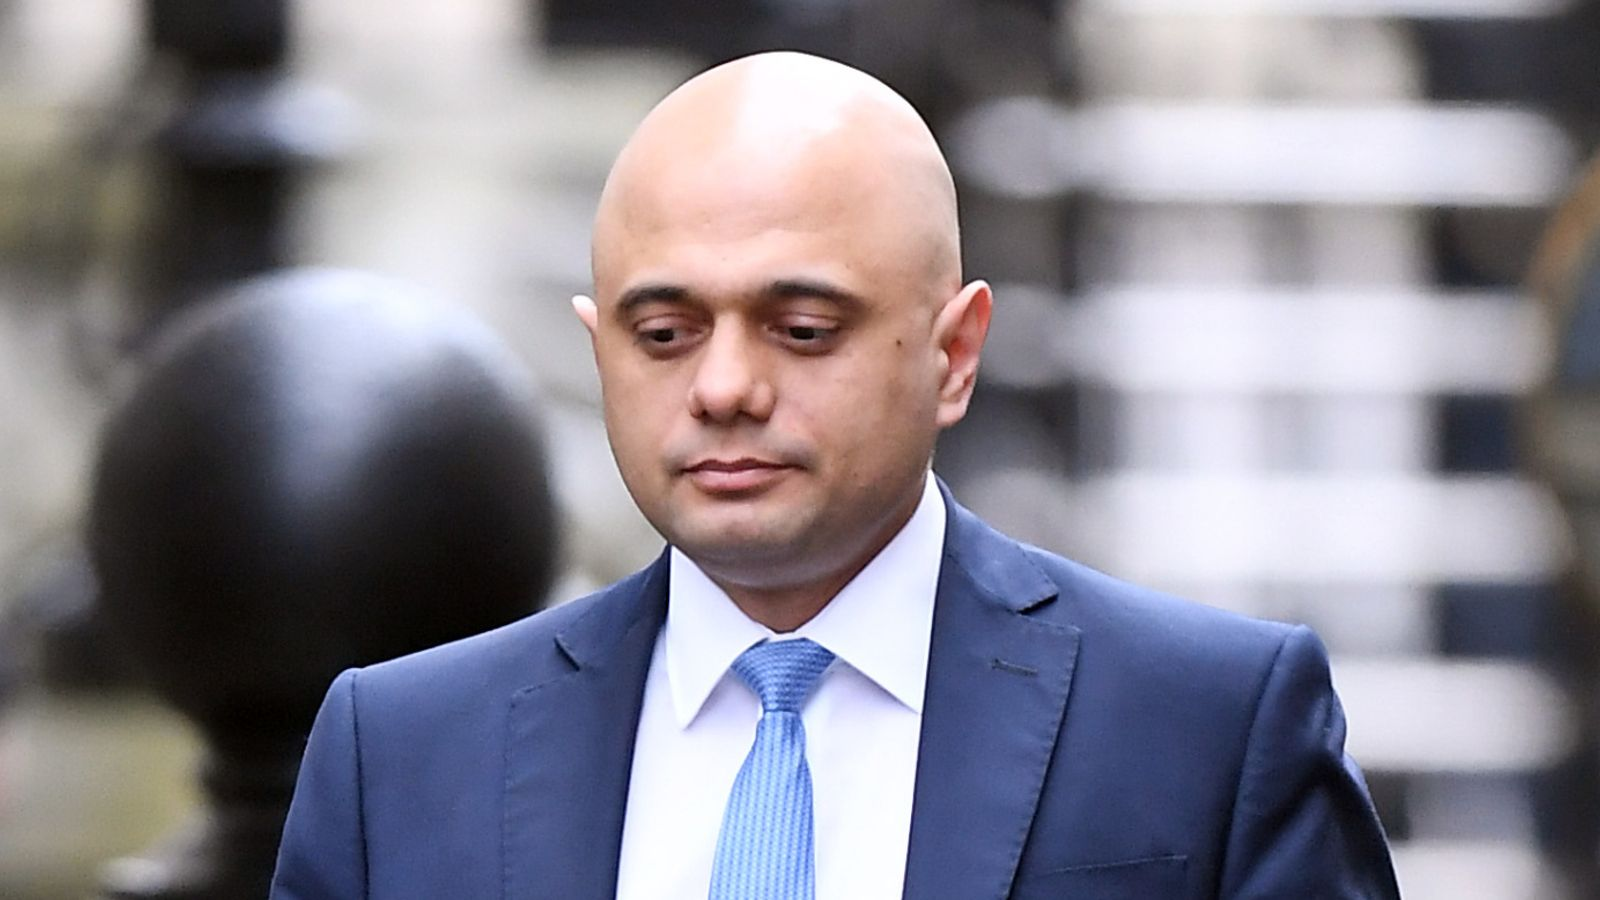 Sajid Javid resigns as chancellor after refusing PM's demand to sack aides